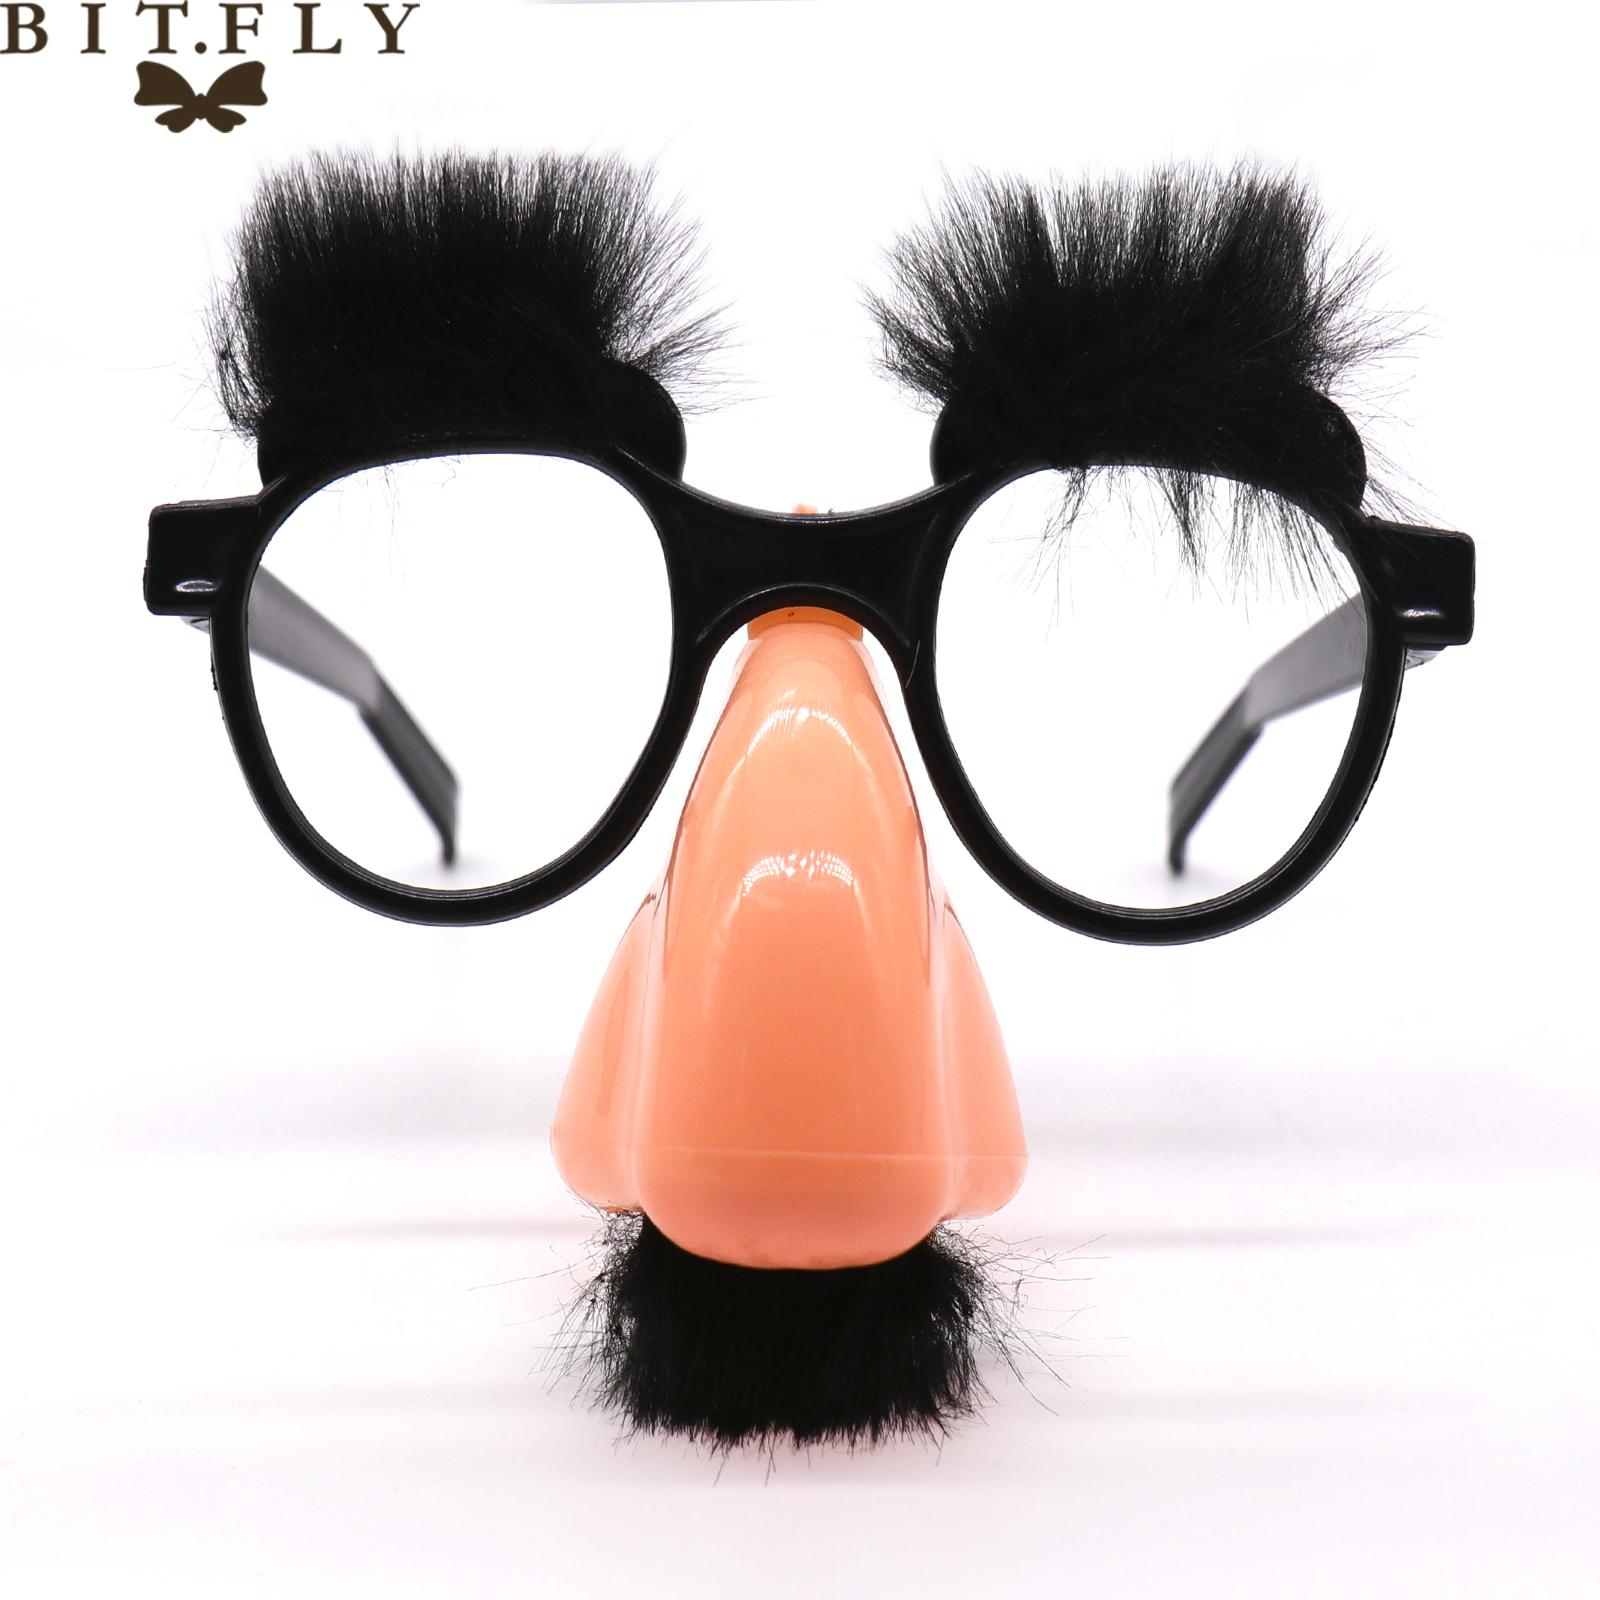 New Stylish Lovely Funny Foolish Nerd Halloween Black Old Man Occhiali Sopracciglio naso con baffi Costume Party decoration suppli